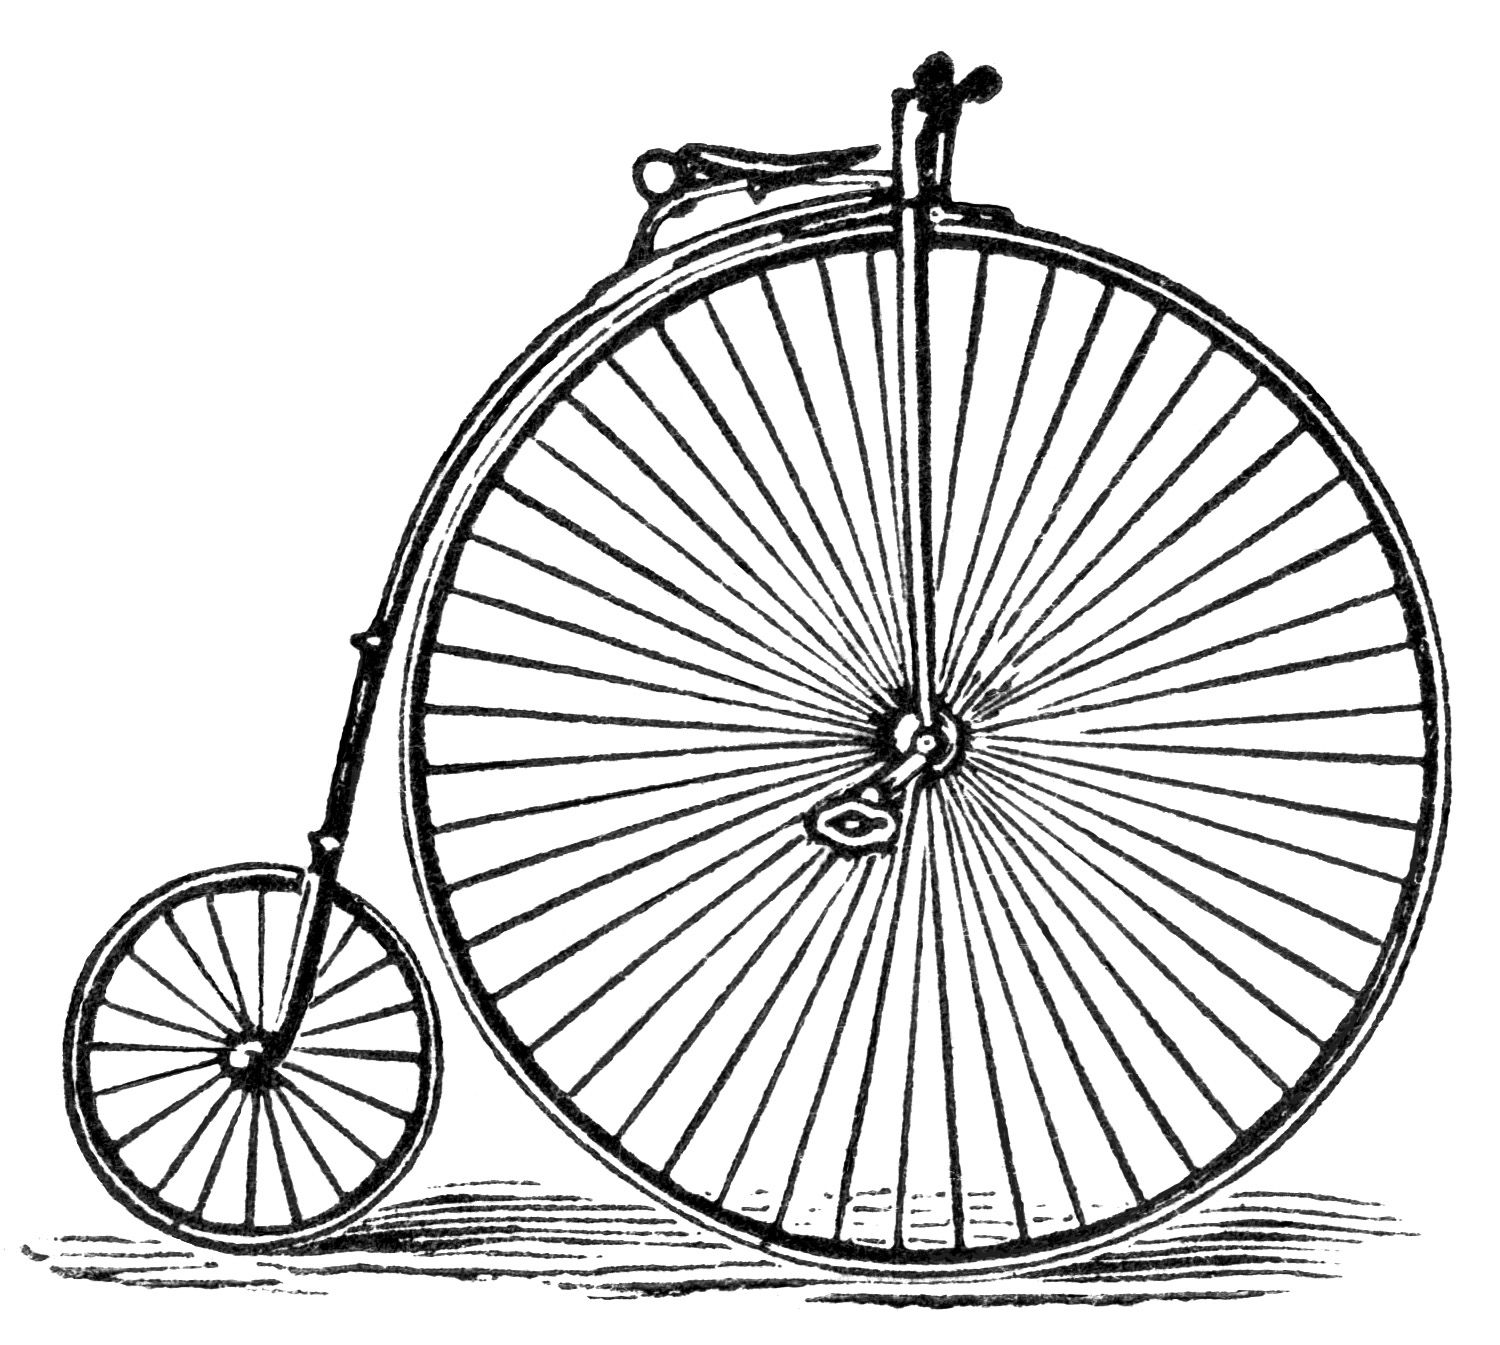 Biking clipart antique. Columbia bicycle steampunk graphics